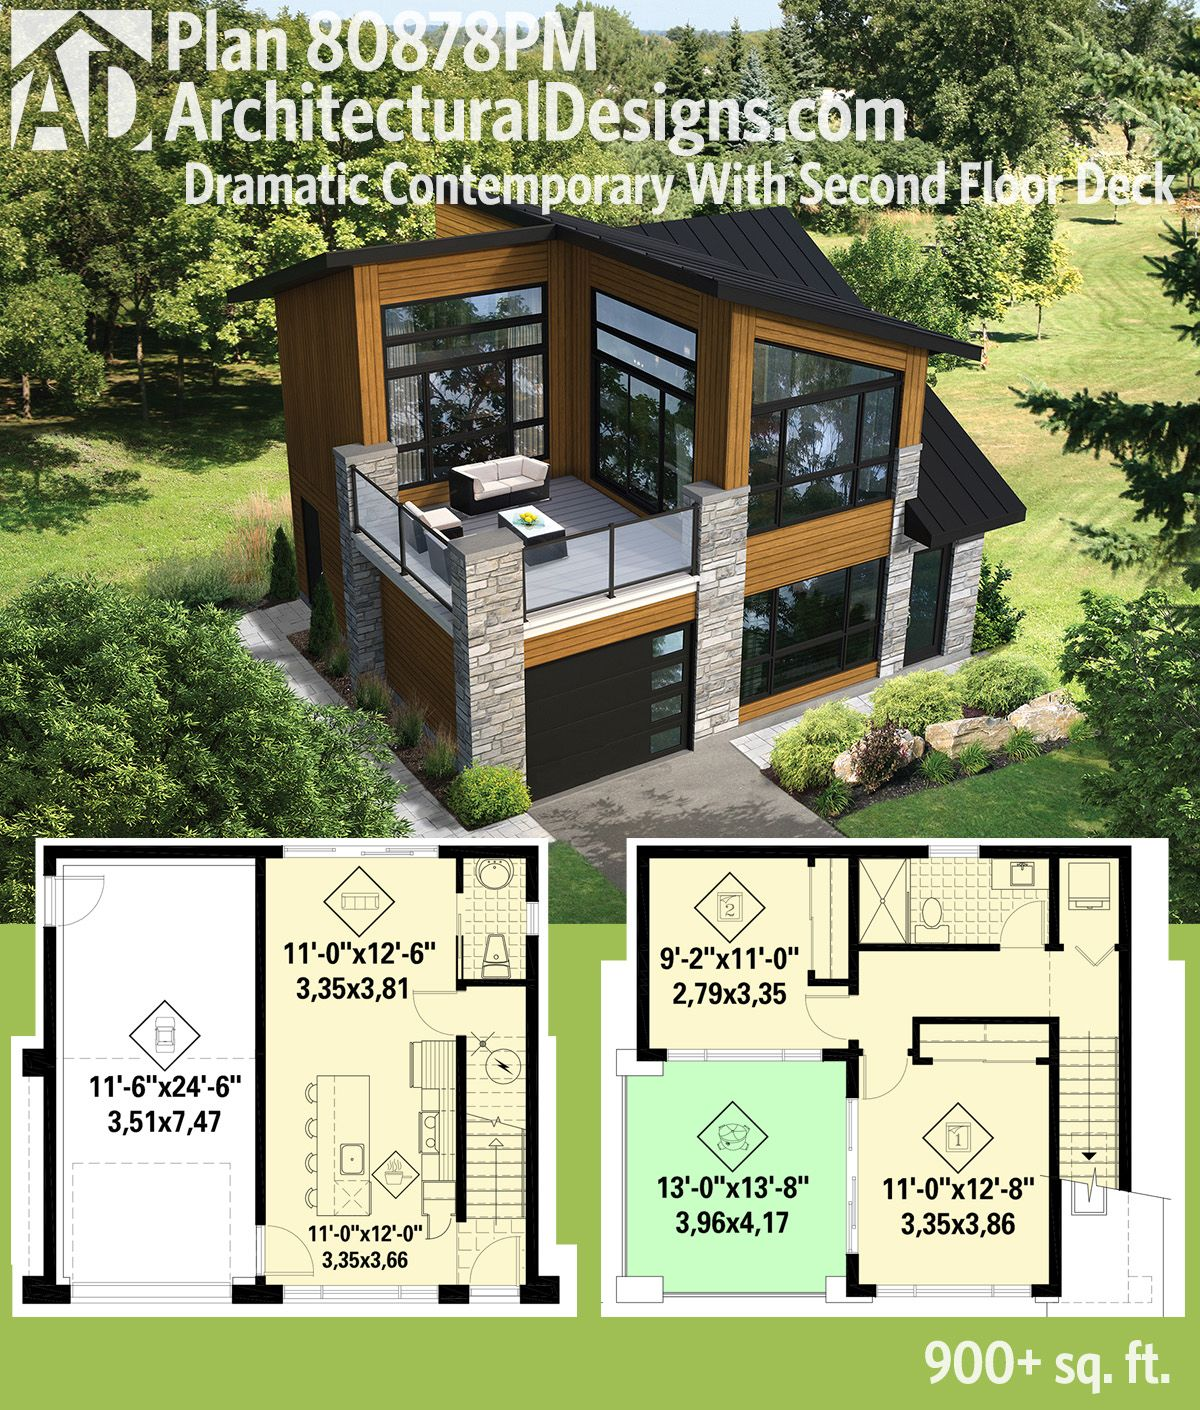 Plan 80878pm dramatic contemporary with second floor deck for Elevated small house design